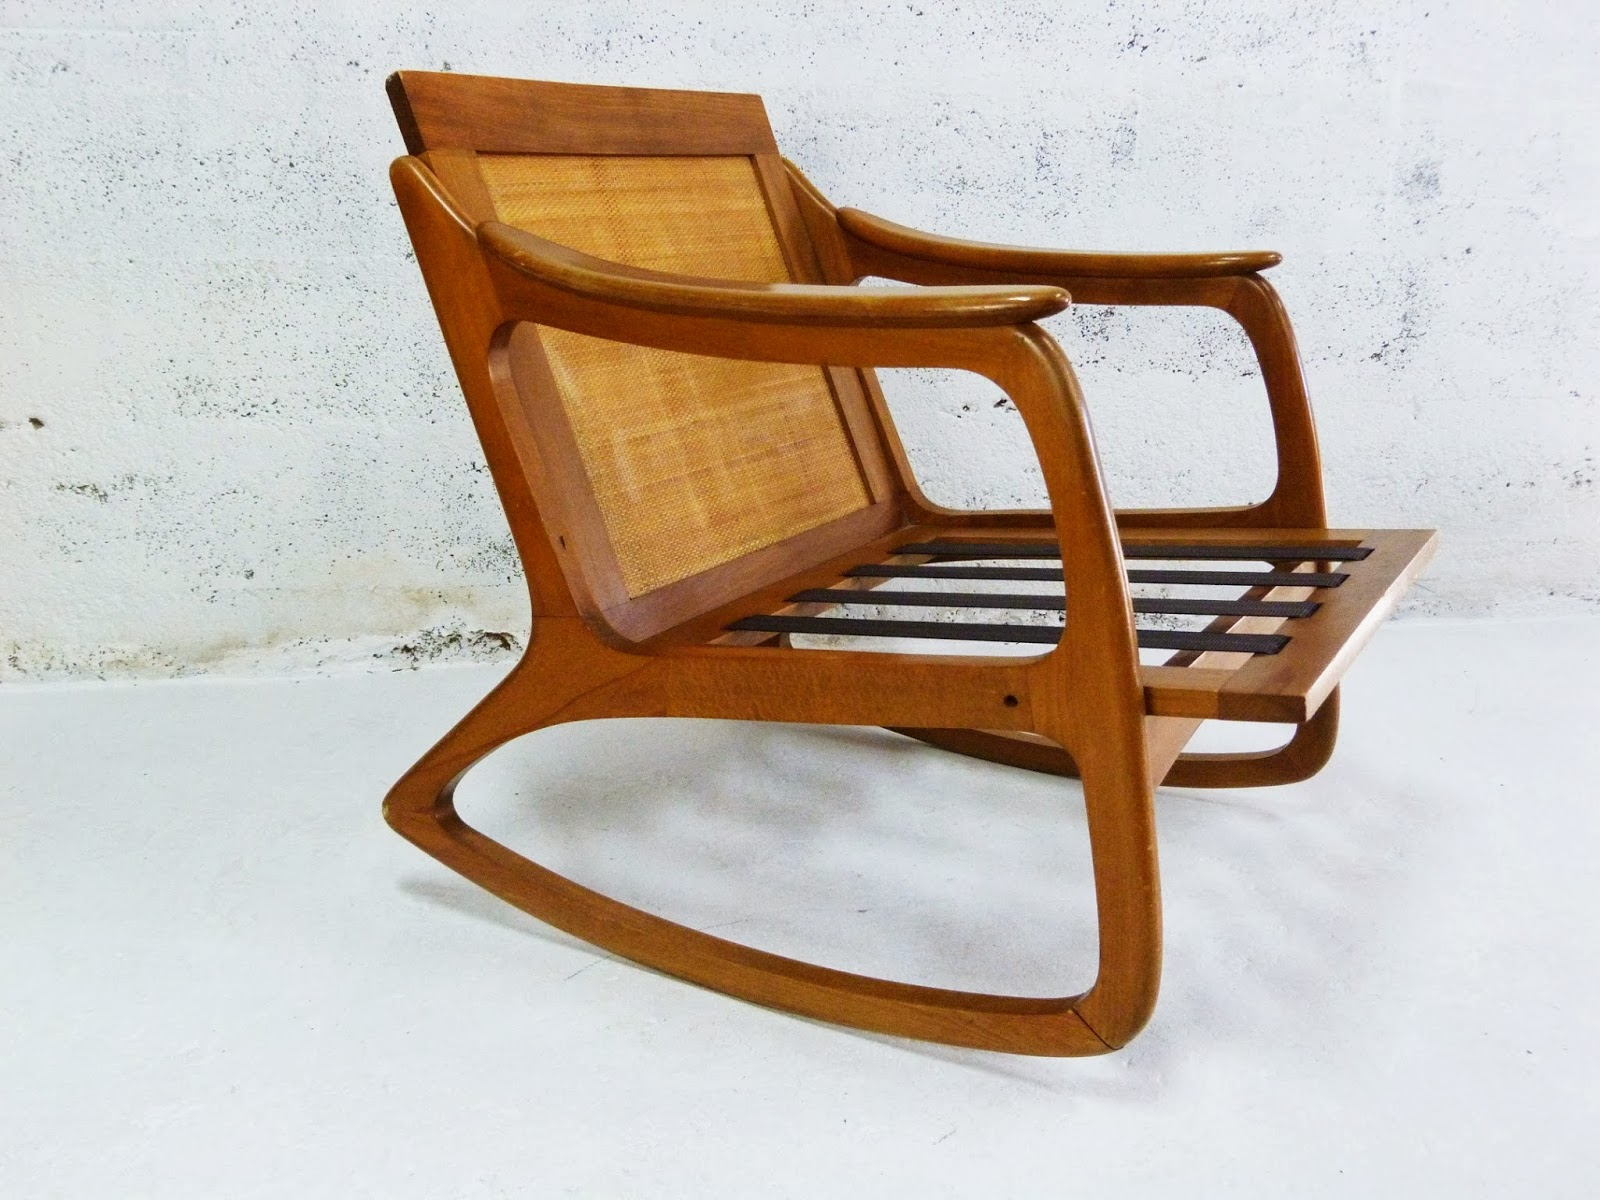 Price reduced sturdy wooden vintage rocking chair made in yugoslavia - Here Is Another Vintage Rocking Chair